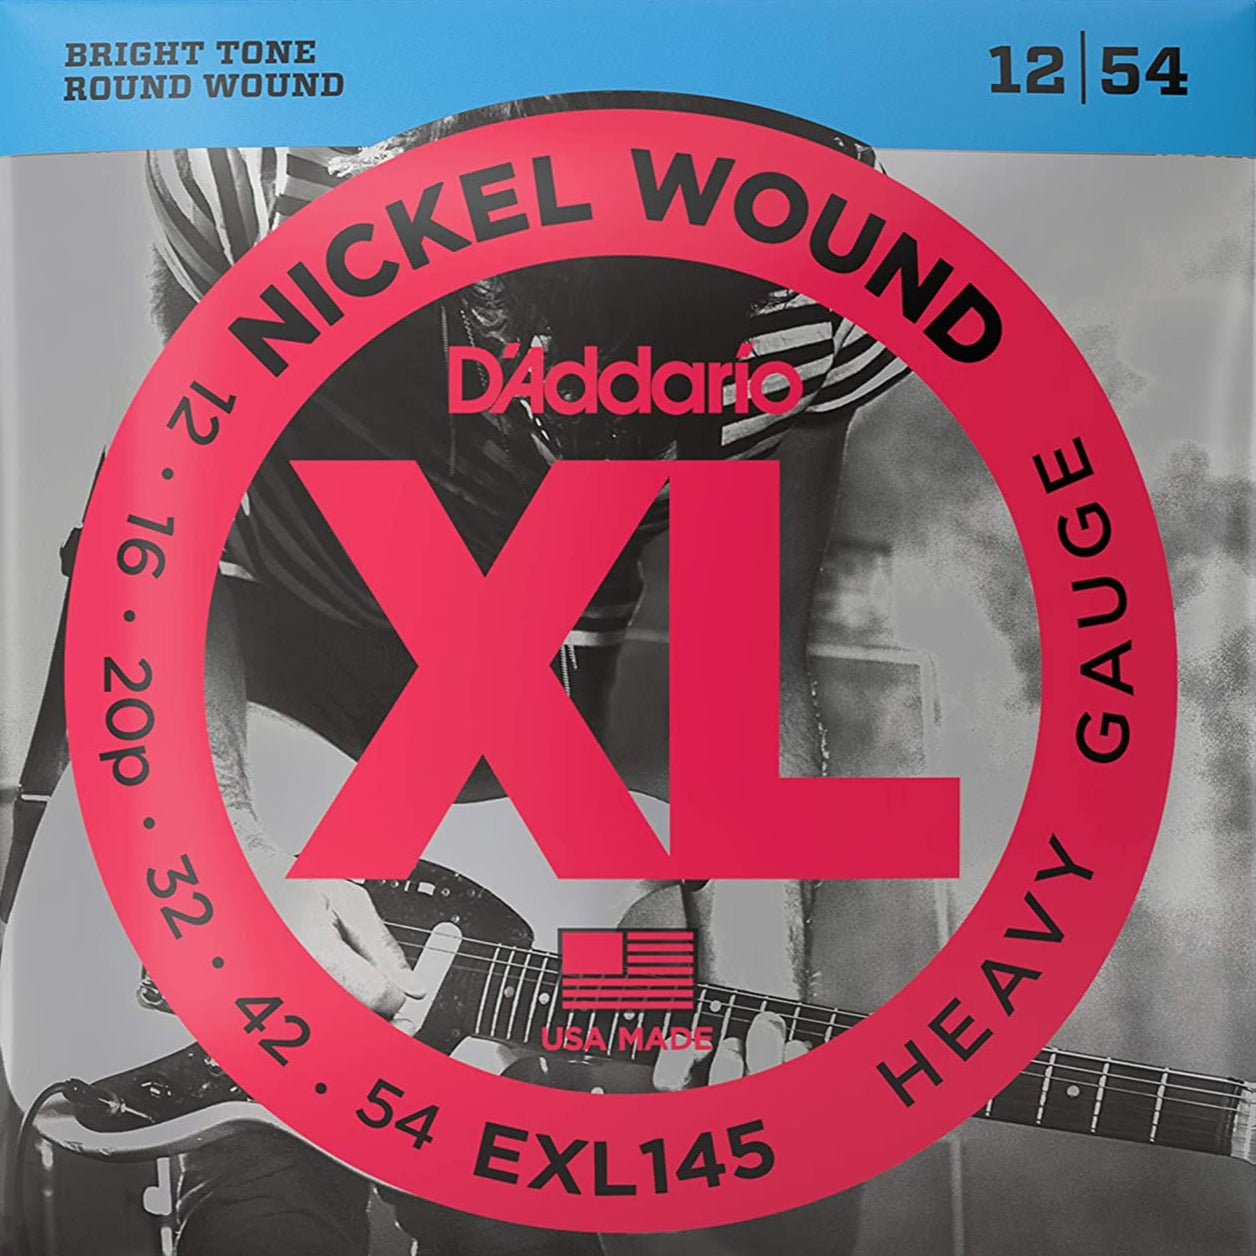 D'Addario EXL145 XL Electric Guitar Strings Heavy - 12-54